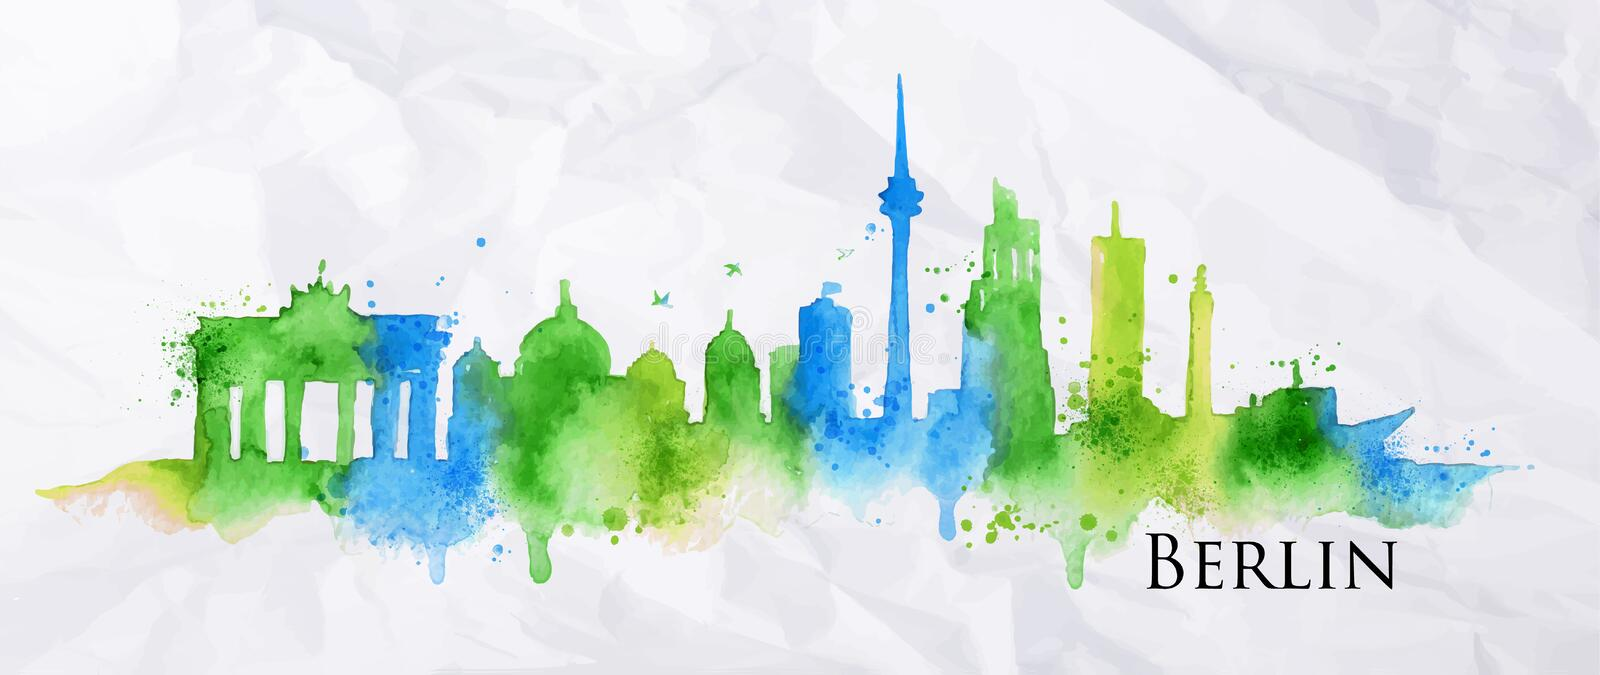 Silhouette watercolor Berlin. Silhouette Berlin city painted with splashes of watercolor drops streaks landmarks in blue and green tones royalty free illustration